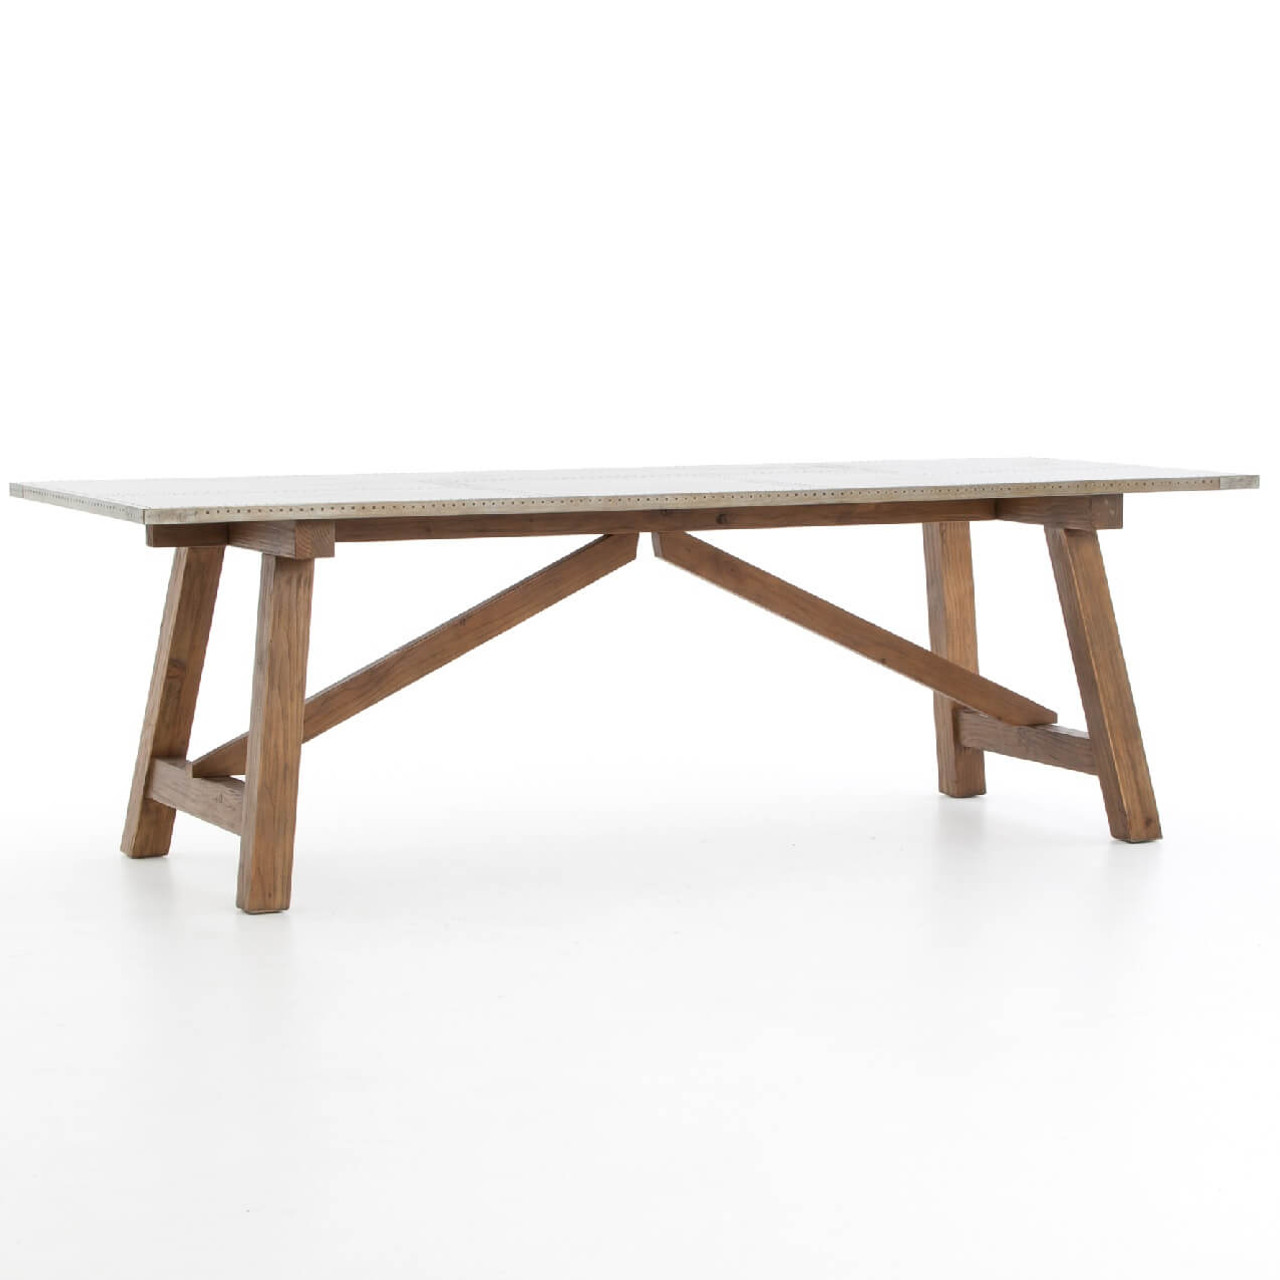 Kirk reclaimed fir zinc clad top dining table 95